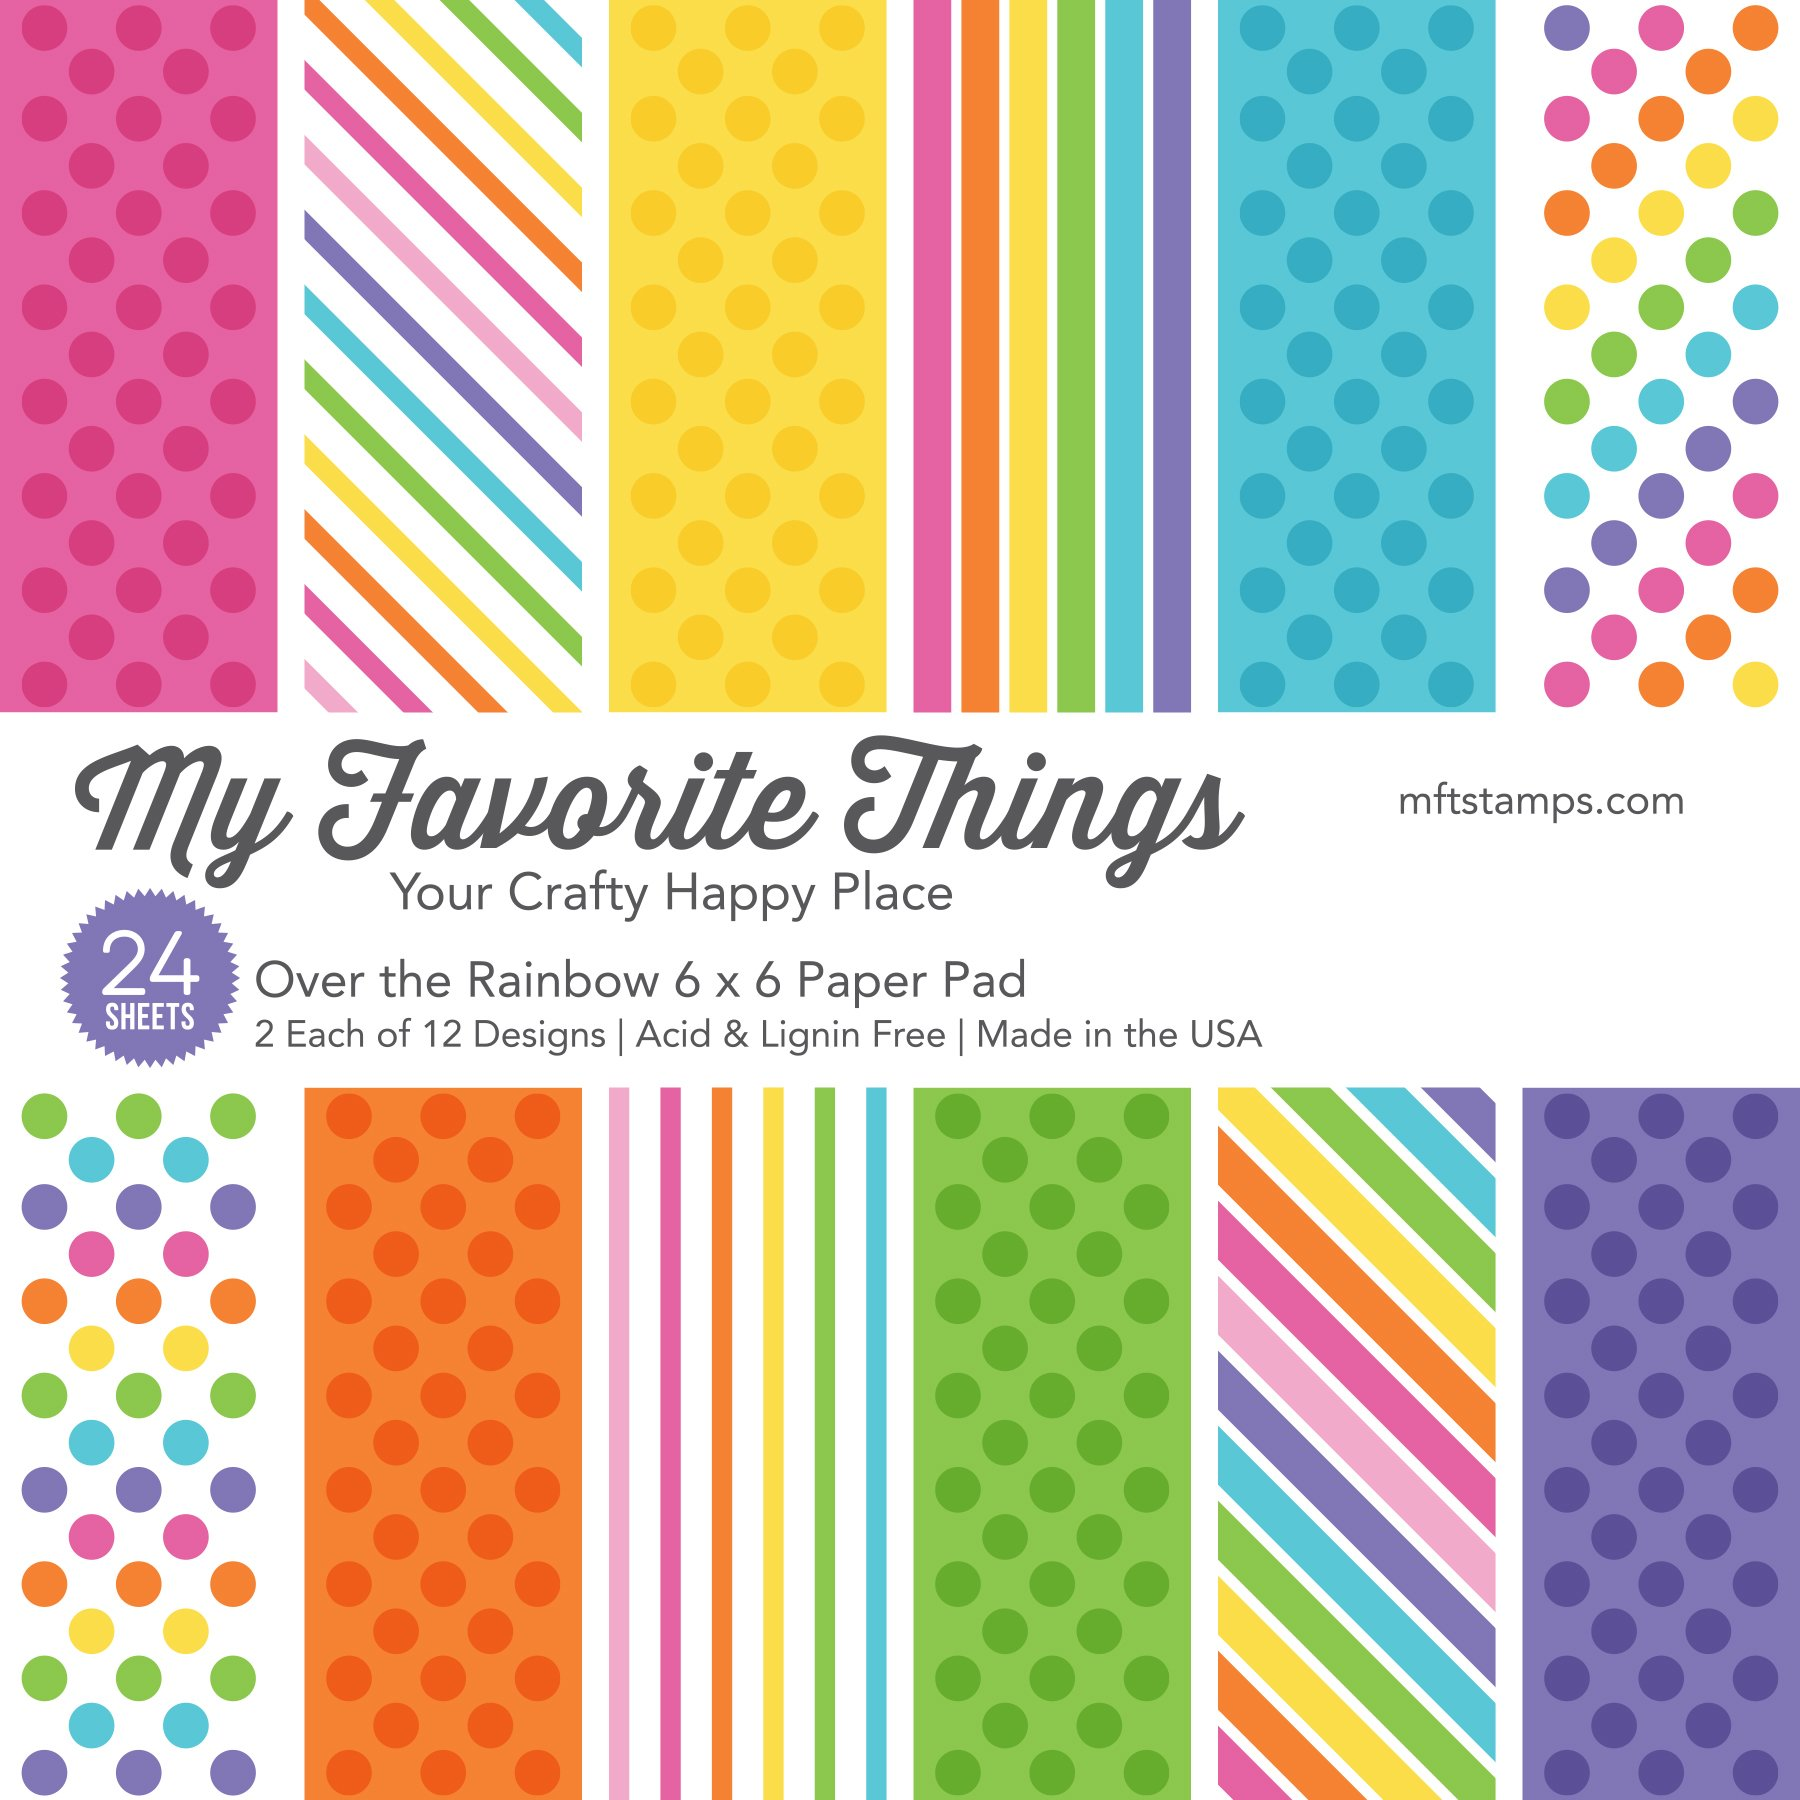 My Favorite Things - Over the Rainbow Paper Pack